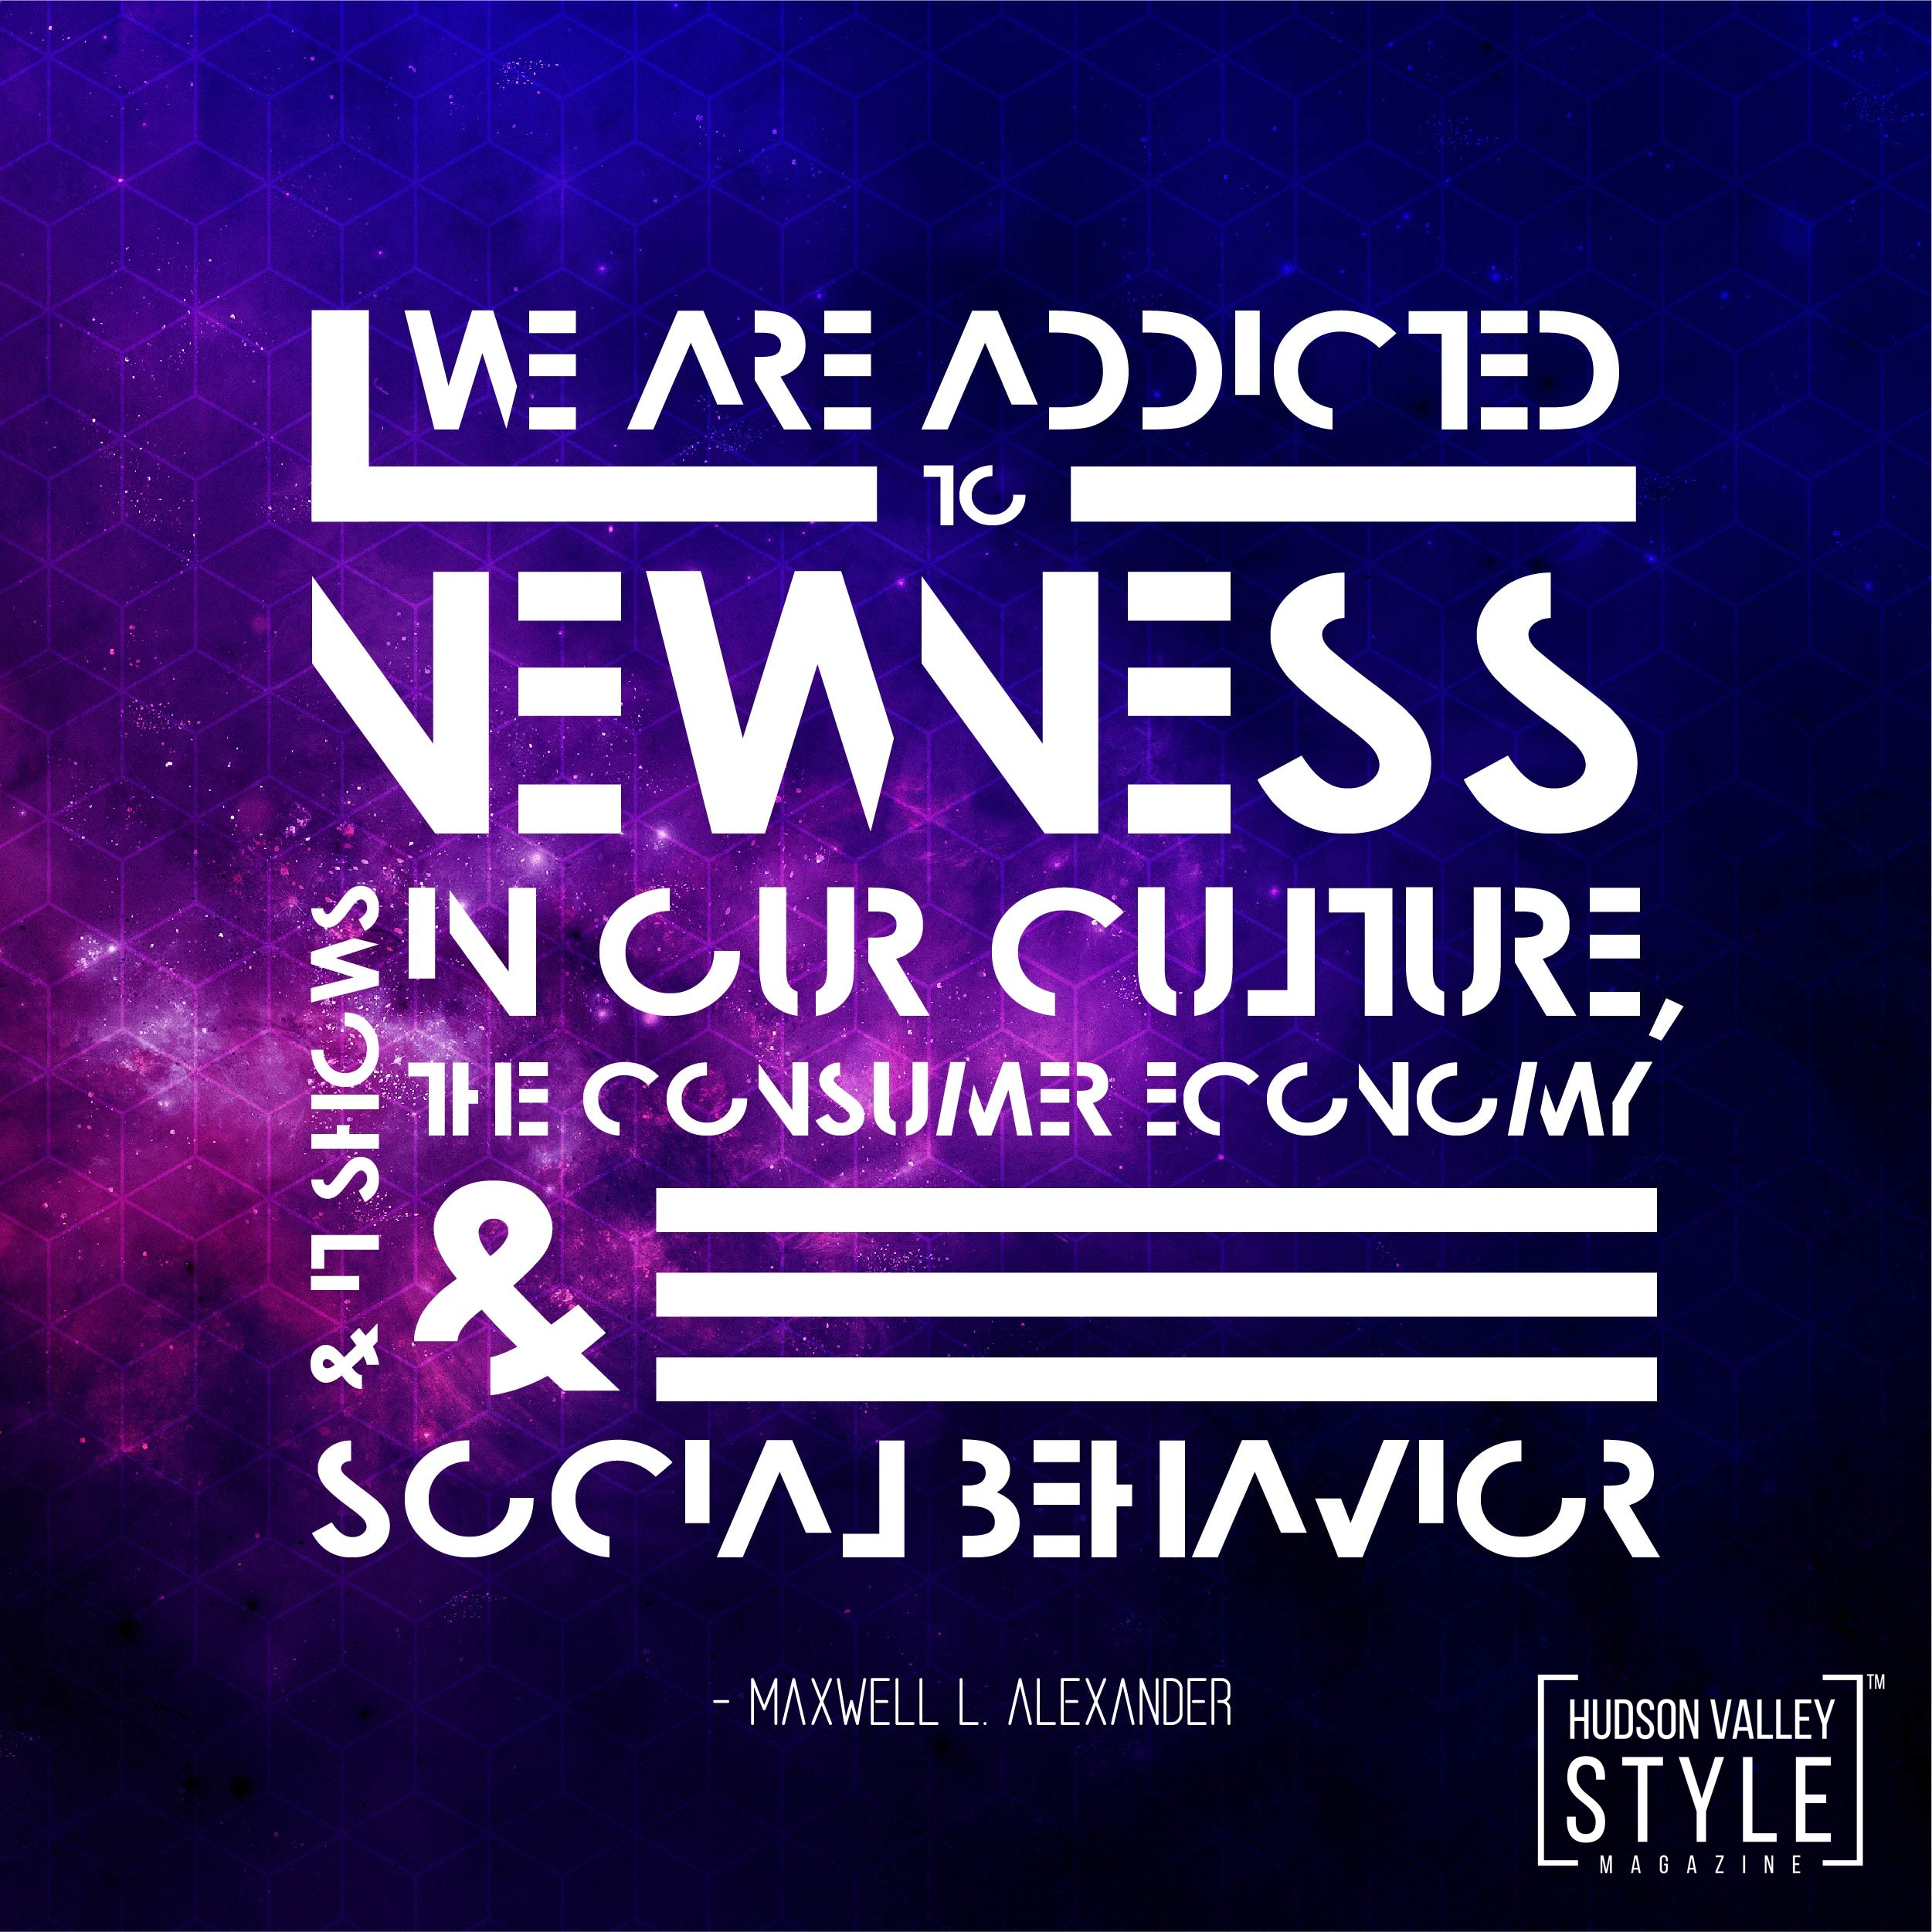 """""""We are Addicted to Newness..."""" - Maxwell L. Alexander"""